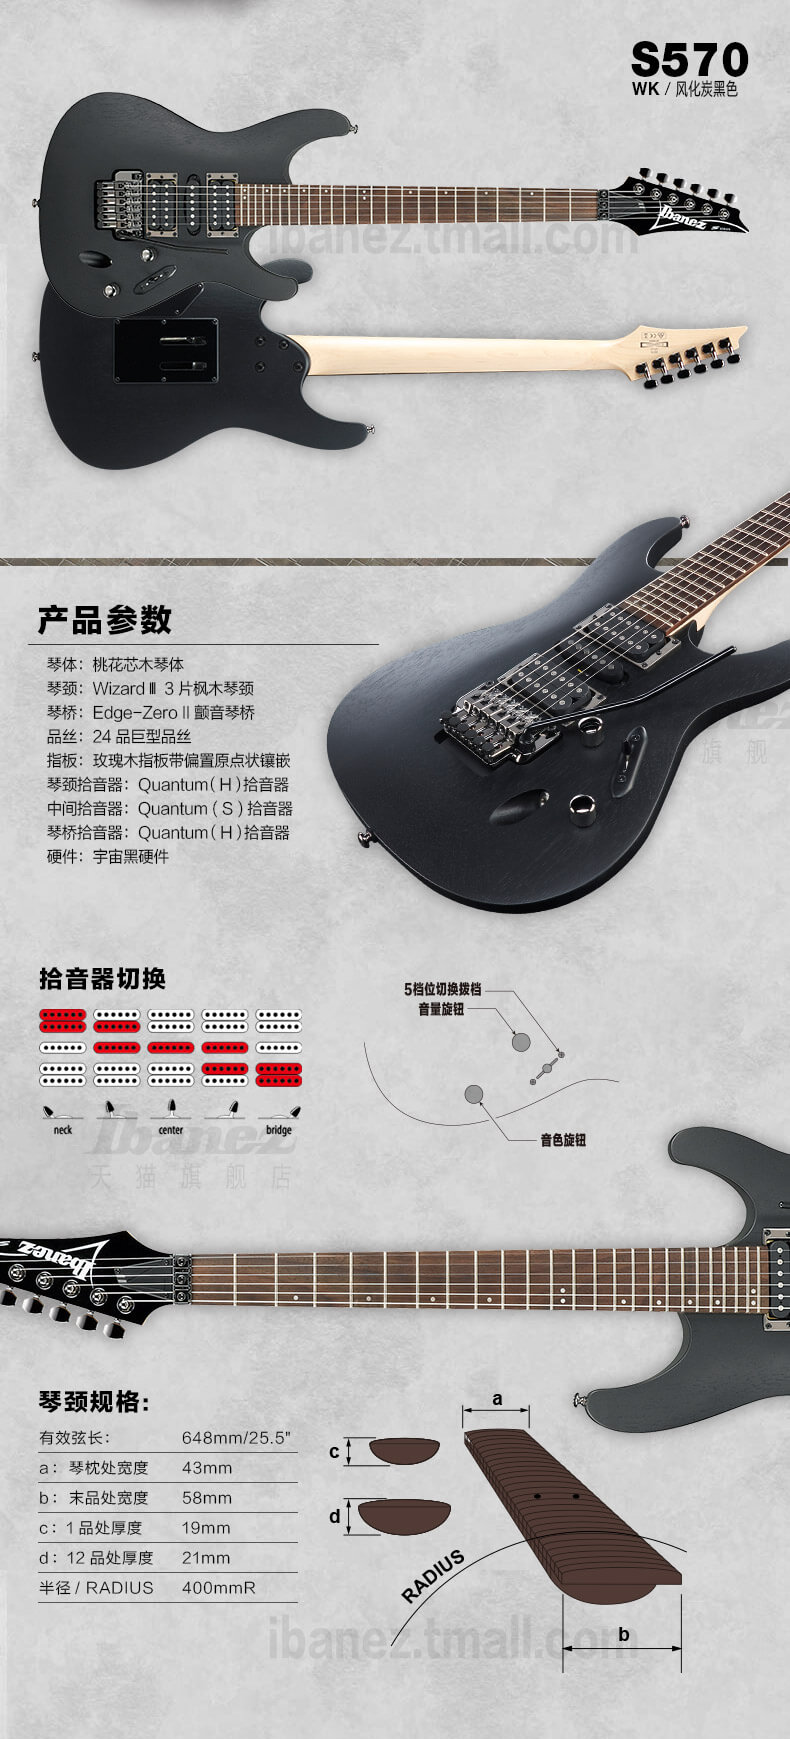 Ibanez Rg 350 Wiring Diagram - Best Wiring Diagram Image 2018